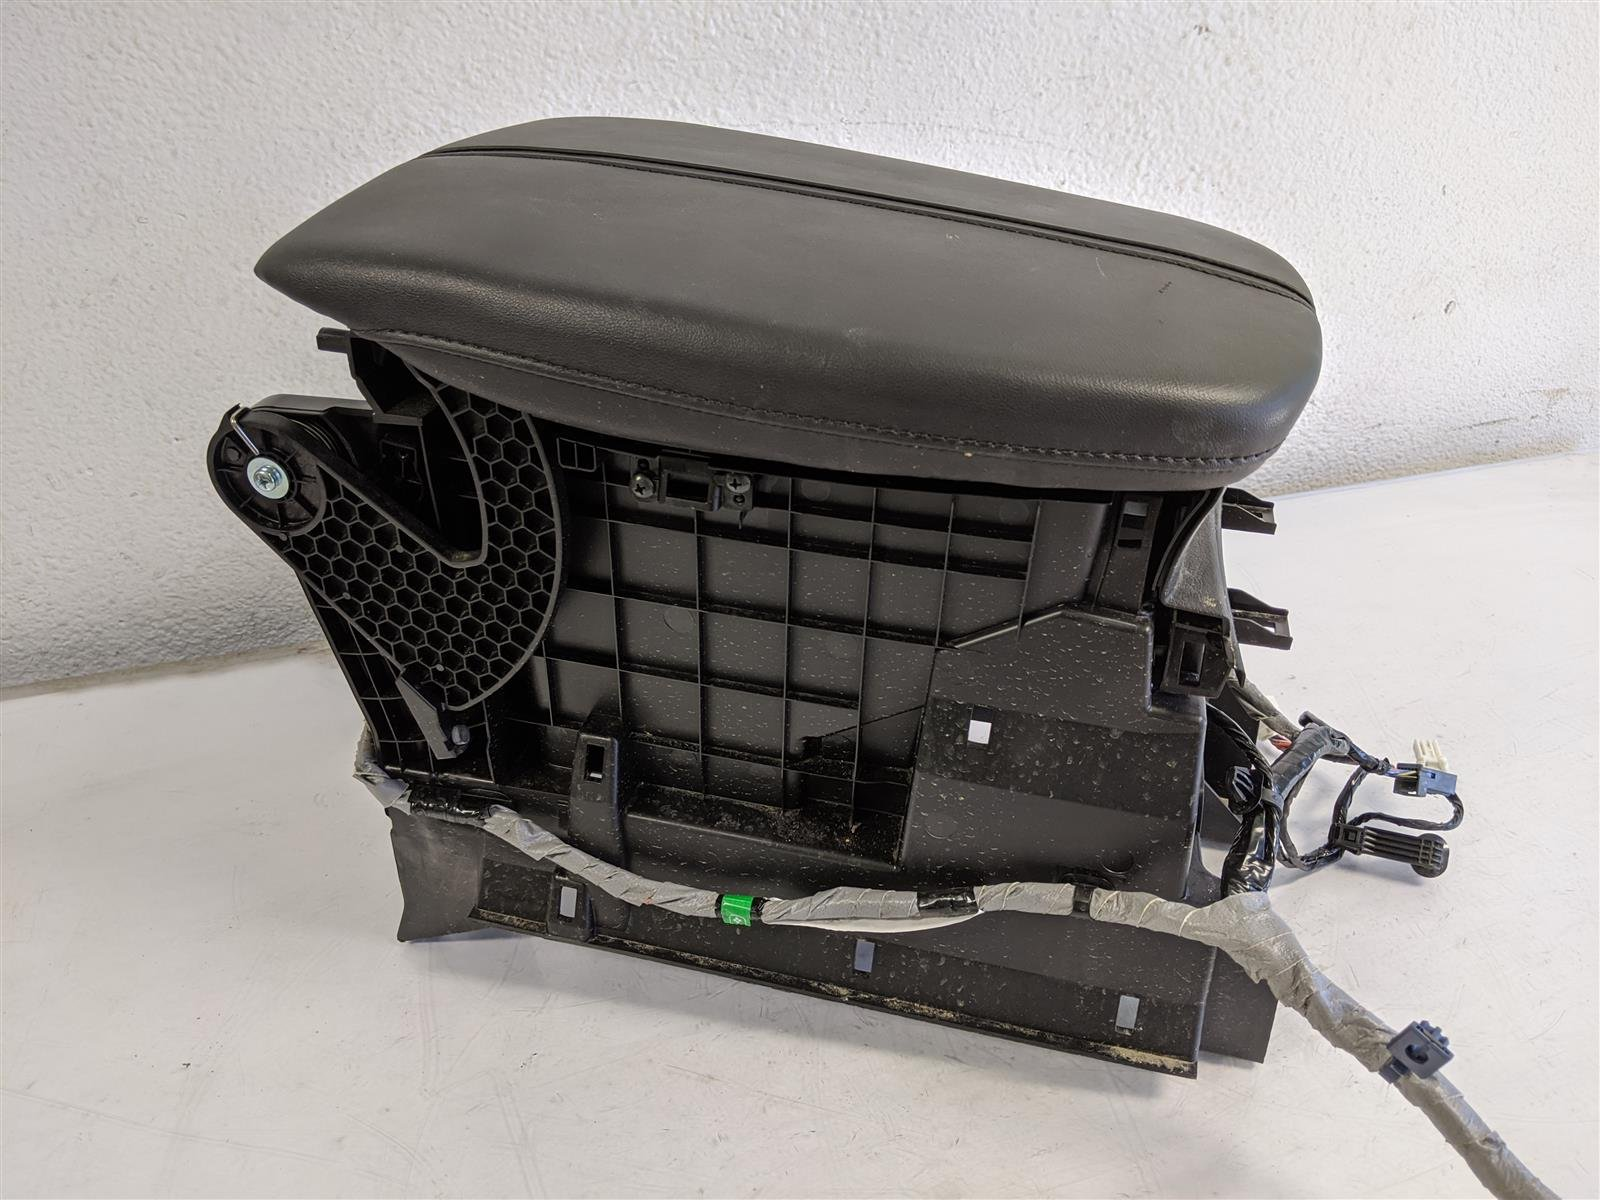 2017 Acura TLX 2.4l Floor Center Console Arm Rest Replacement